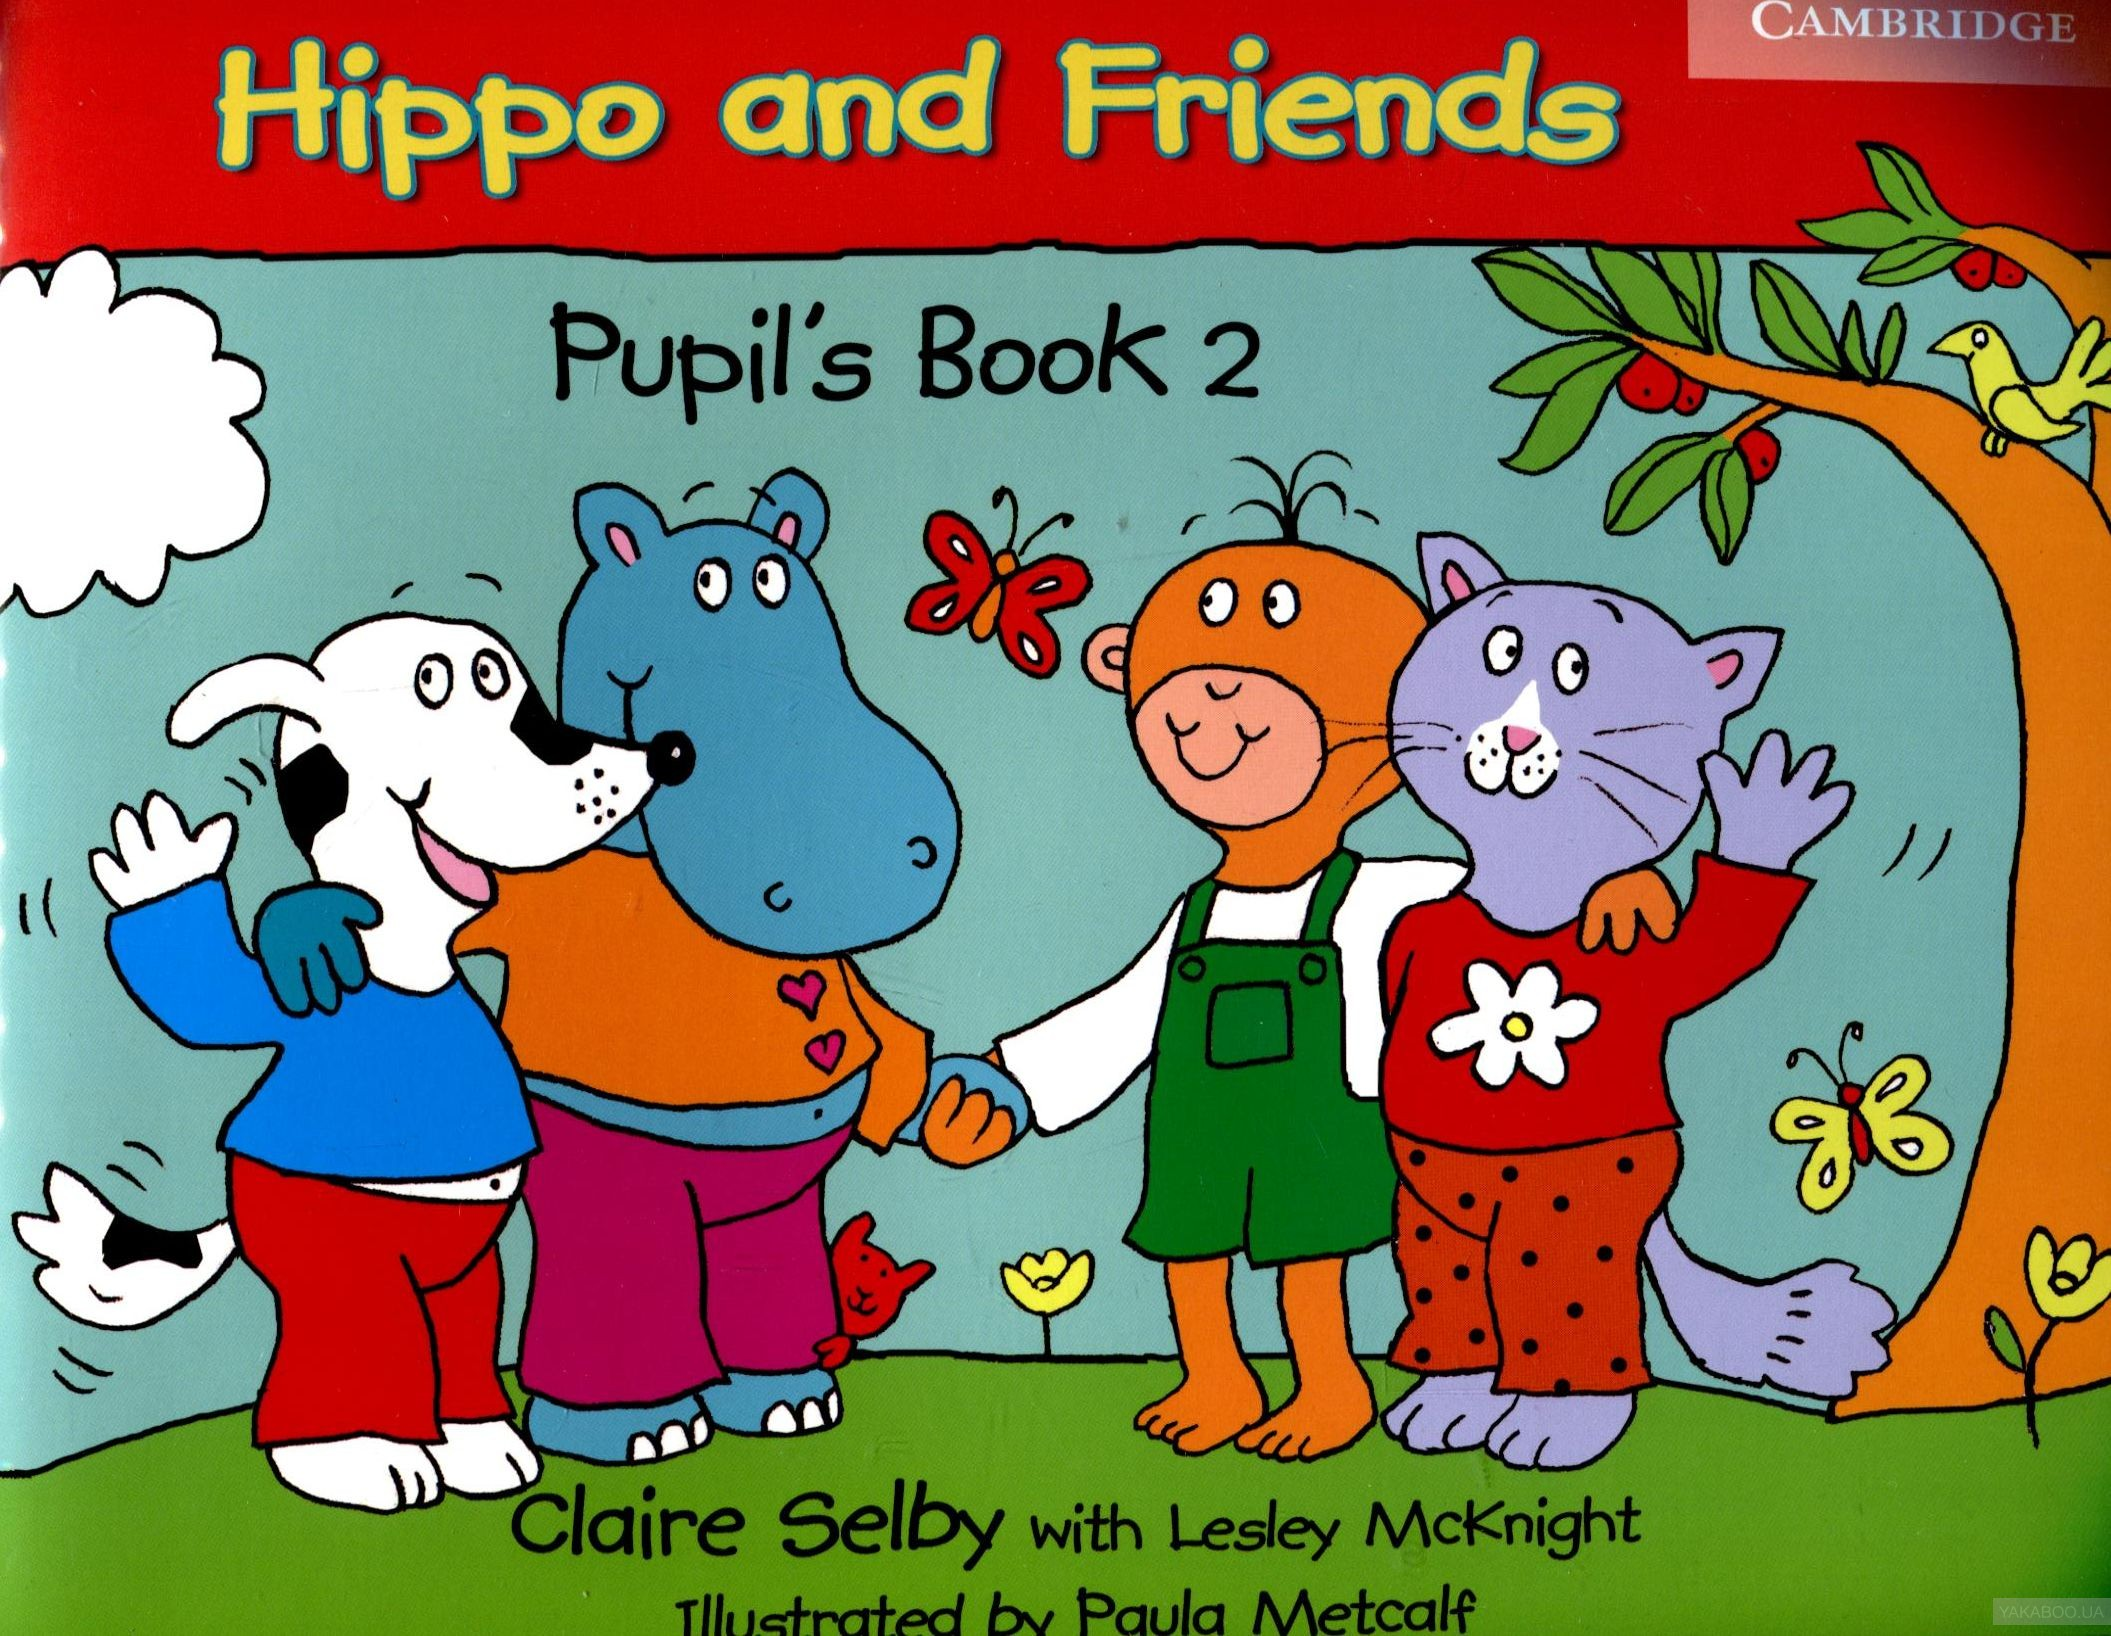 Hippo and friends. pupil's